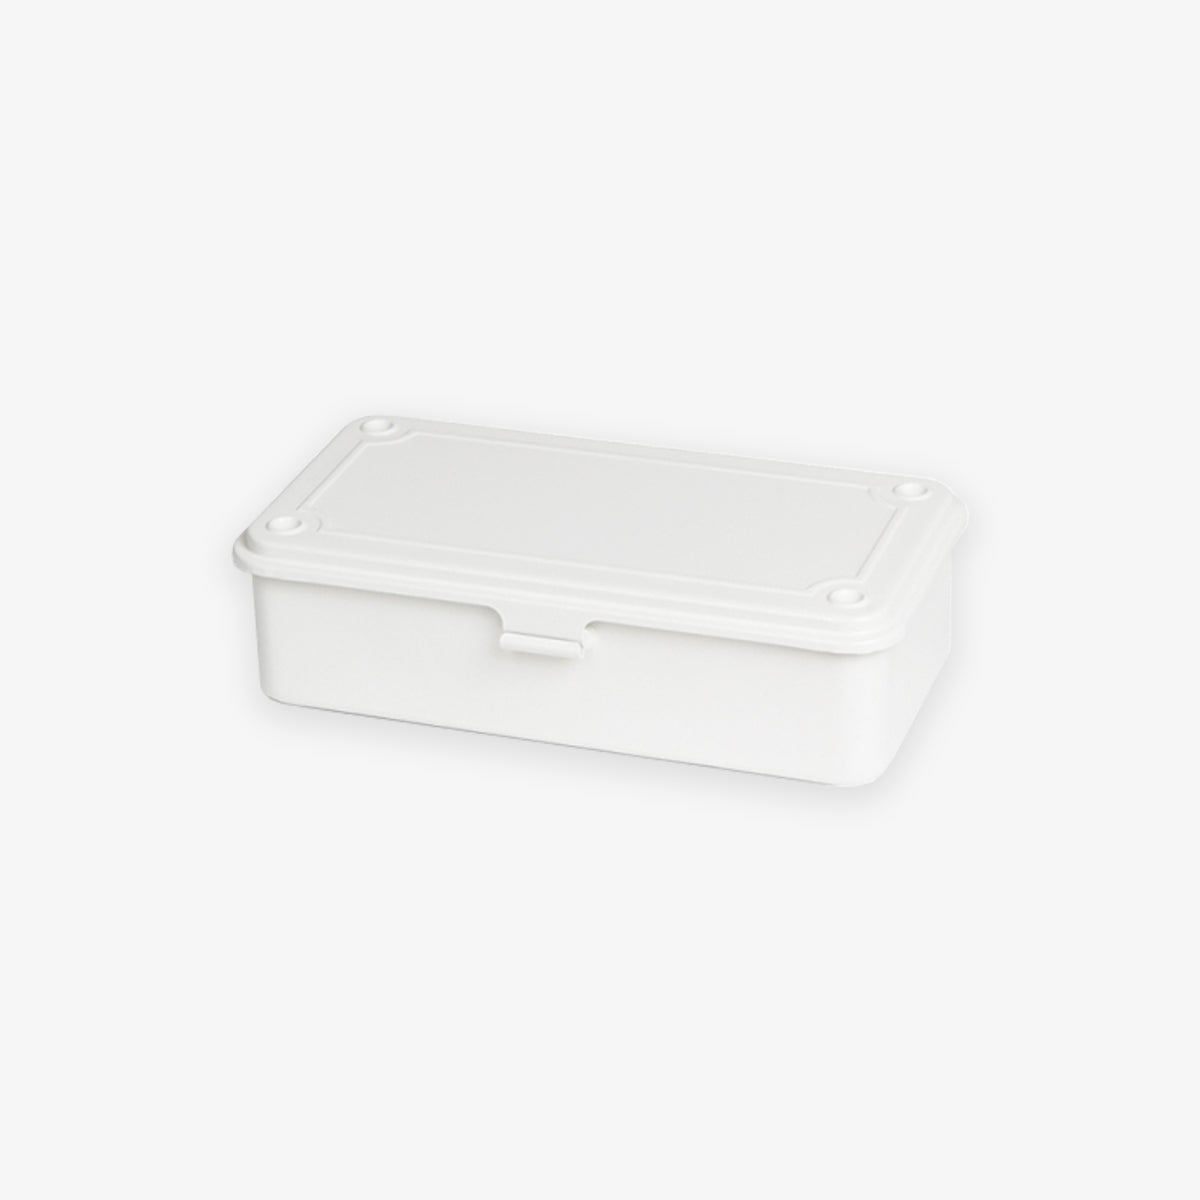 T-190 STEEL TOOL BOX // MILKY WHITE